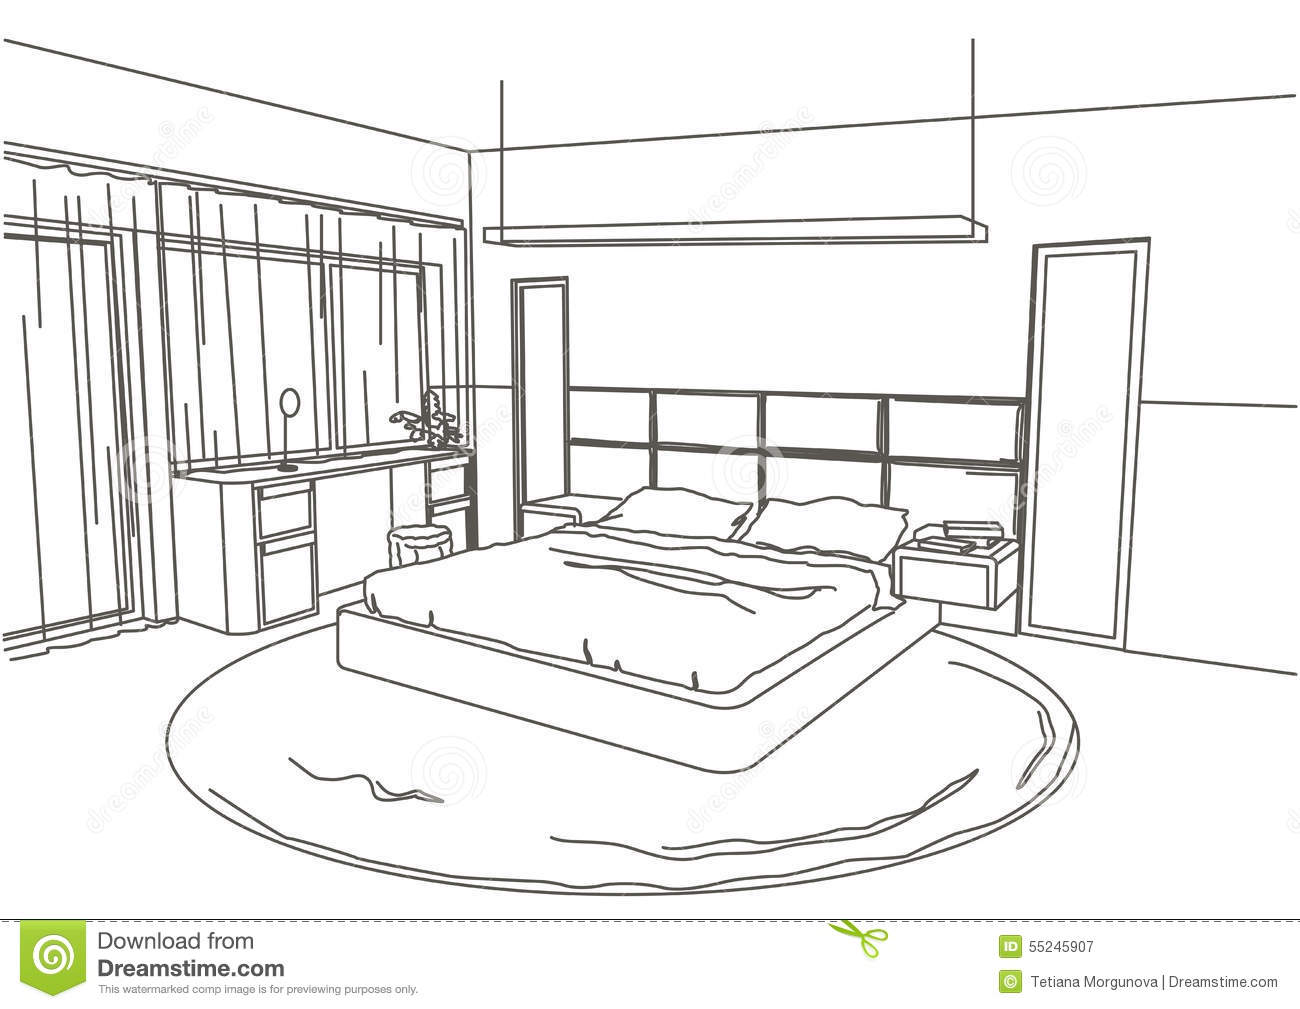 Linear Architectural Sketch Interior Modern Bedroom Stock